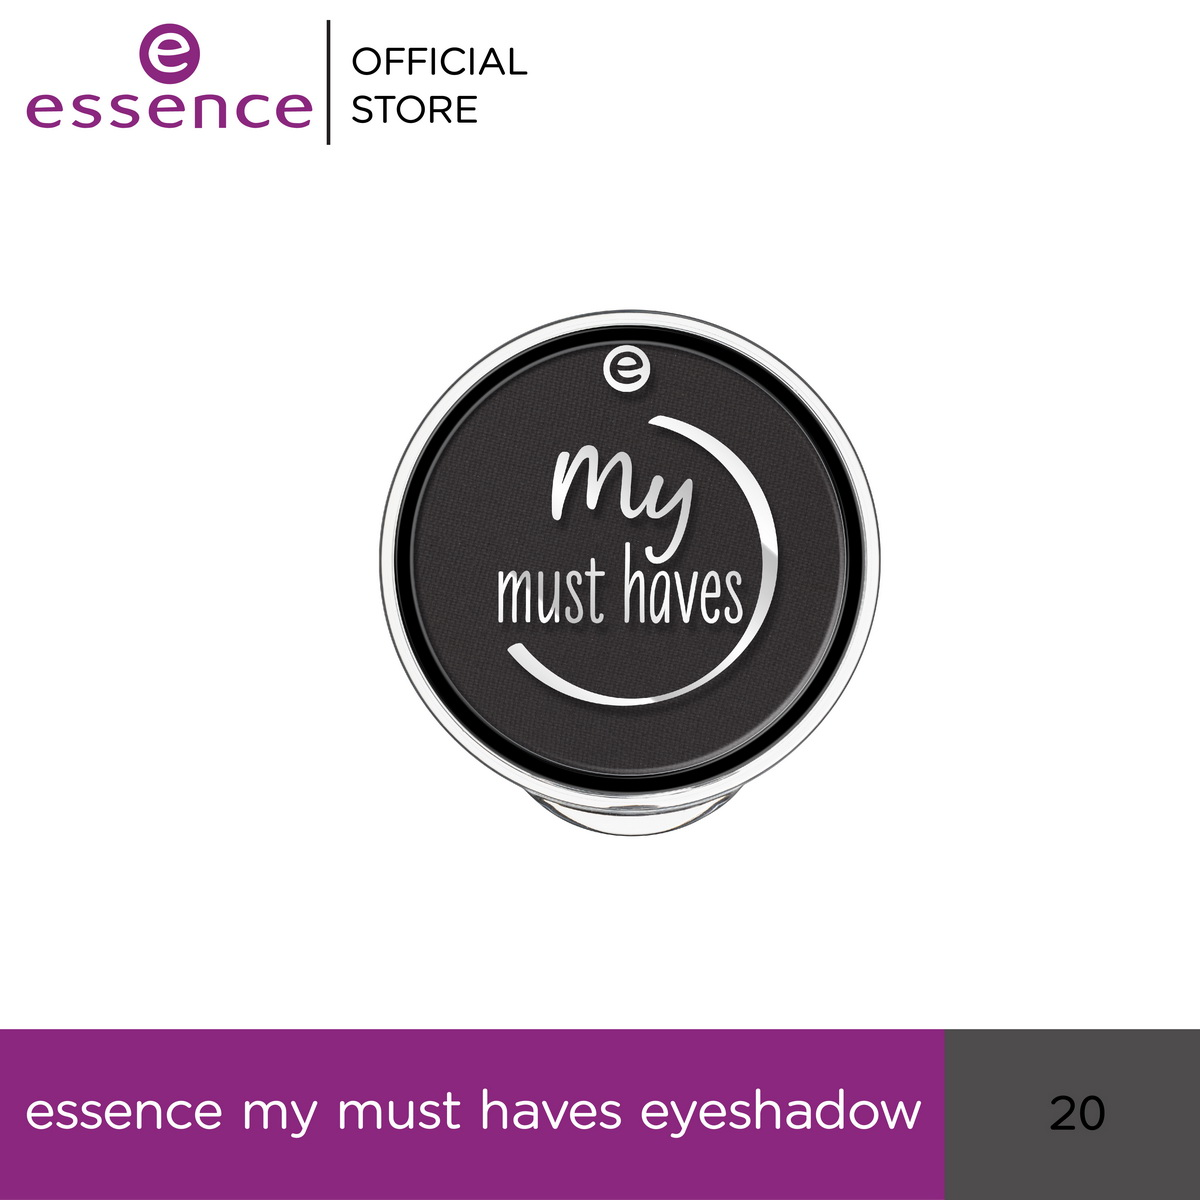 ess.my must haves eyeshadow 20